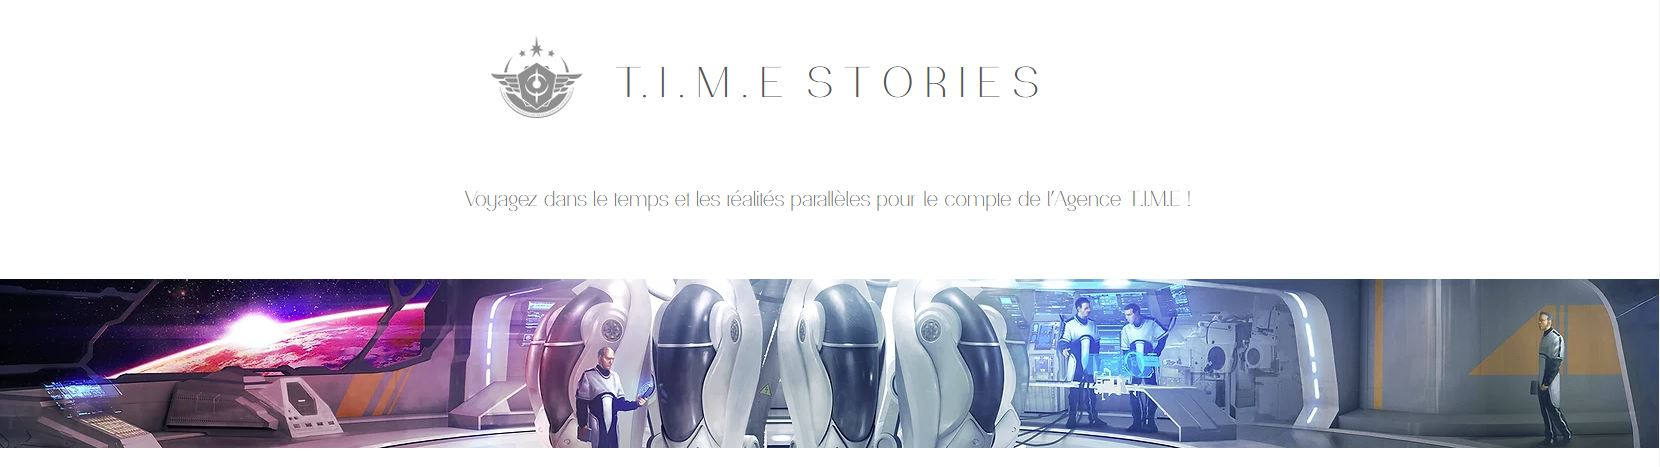 Space Cowboys - Time Stories Cycle Blanc